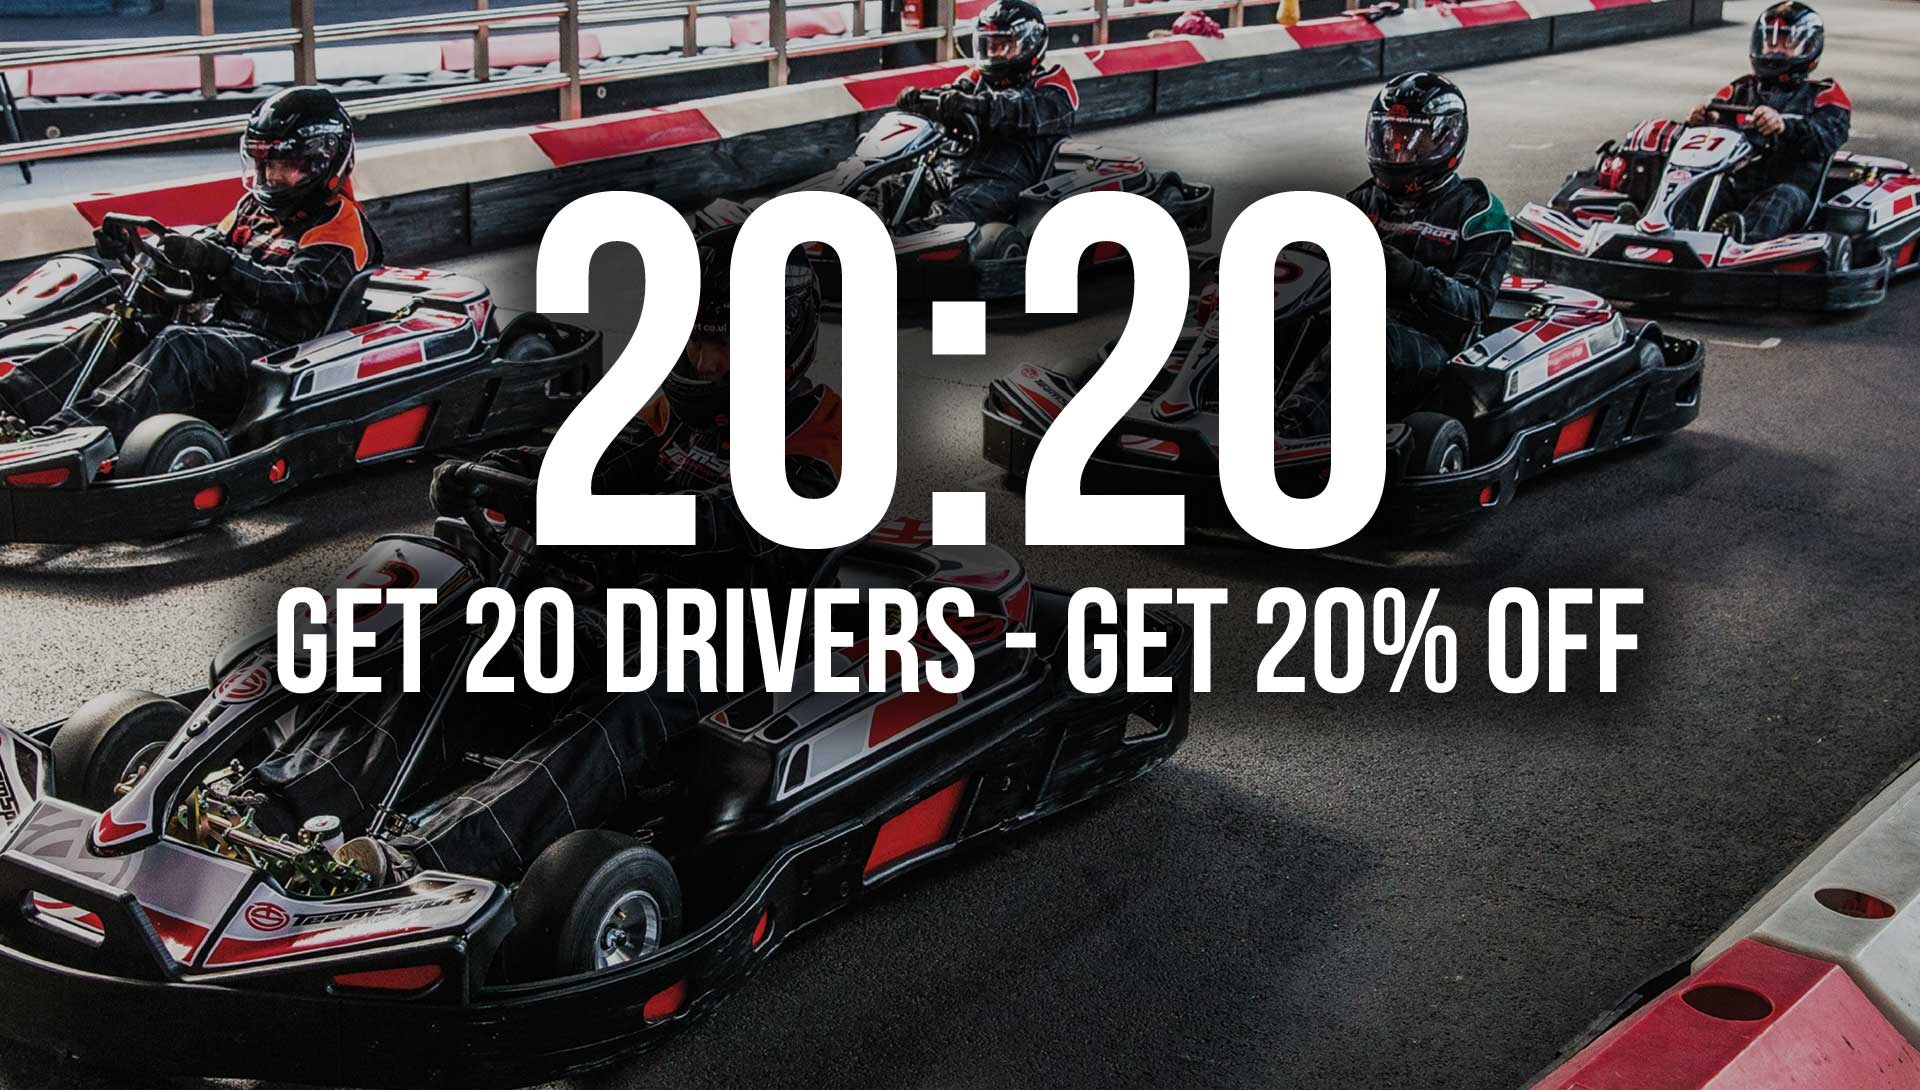 GO KARTING OFFERS - 20:20